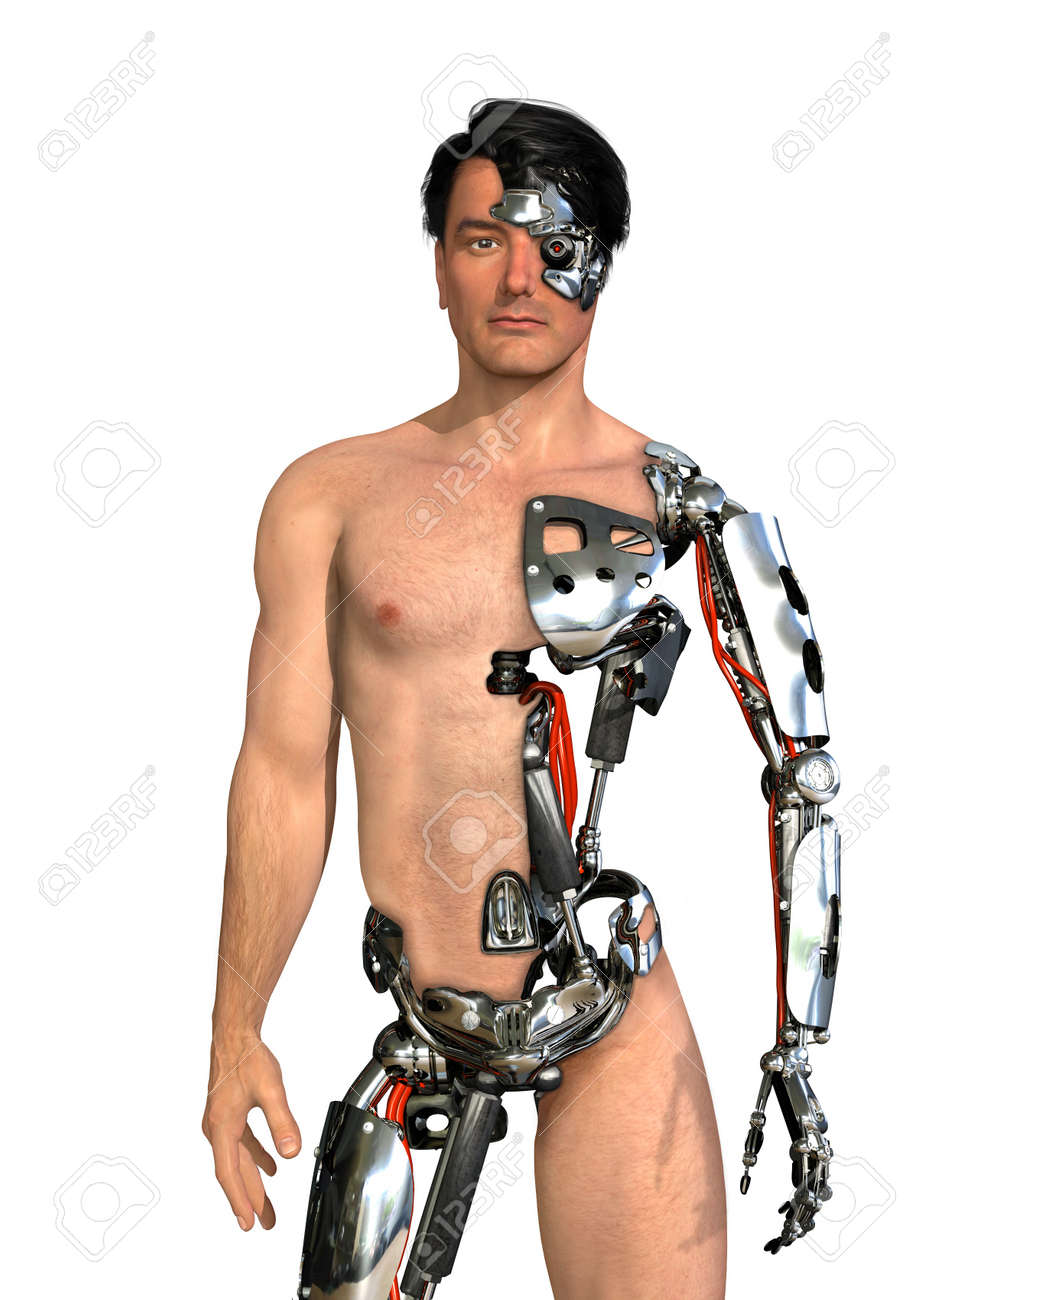 A man has had large areas of his body replaced with robotic parts - 3D render with digital painting Stock Photo - 17453040